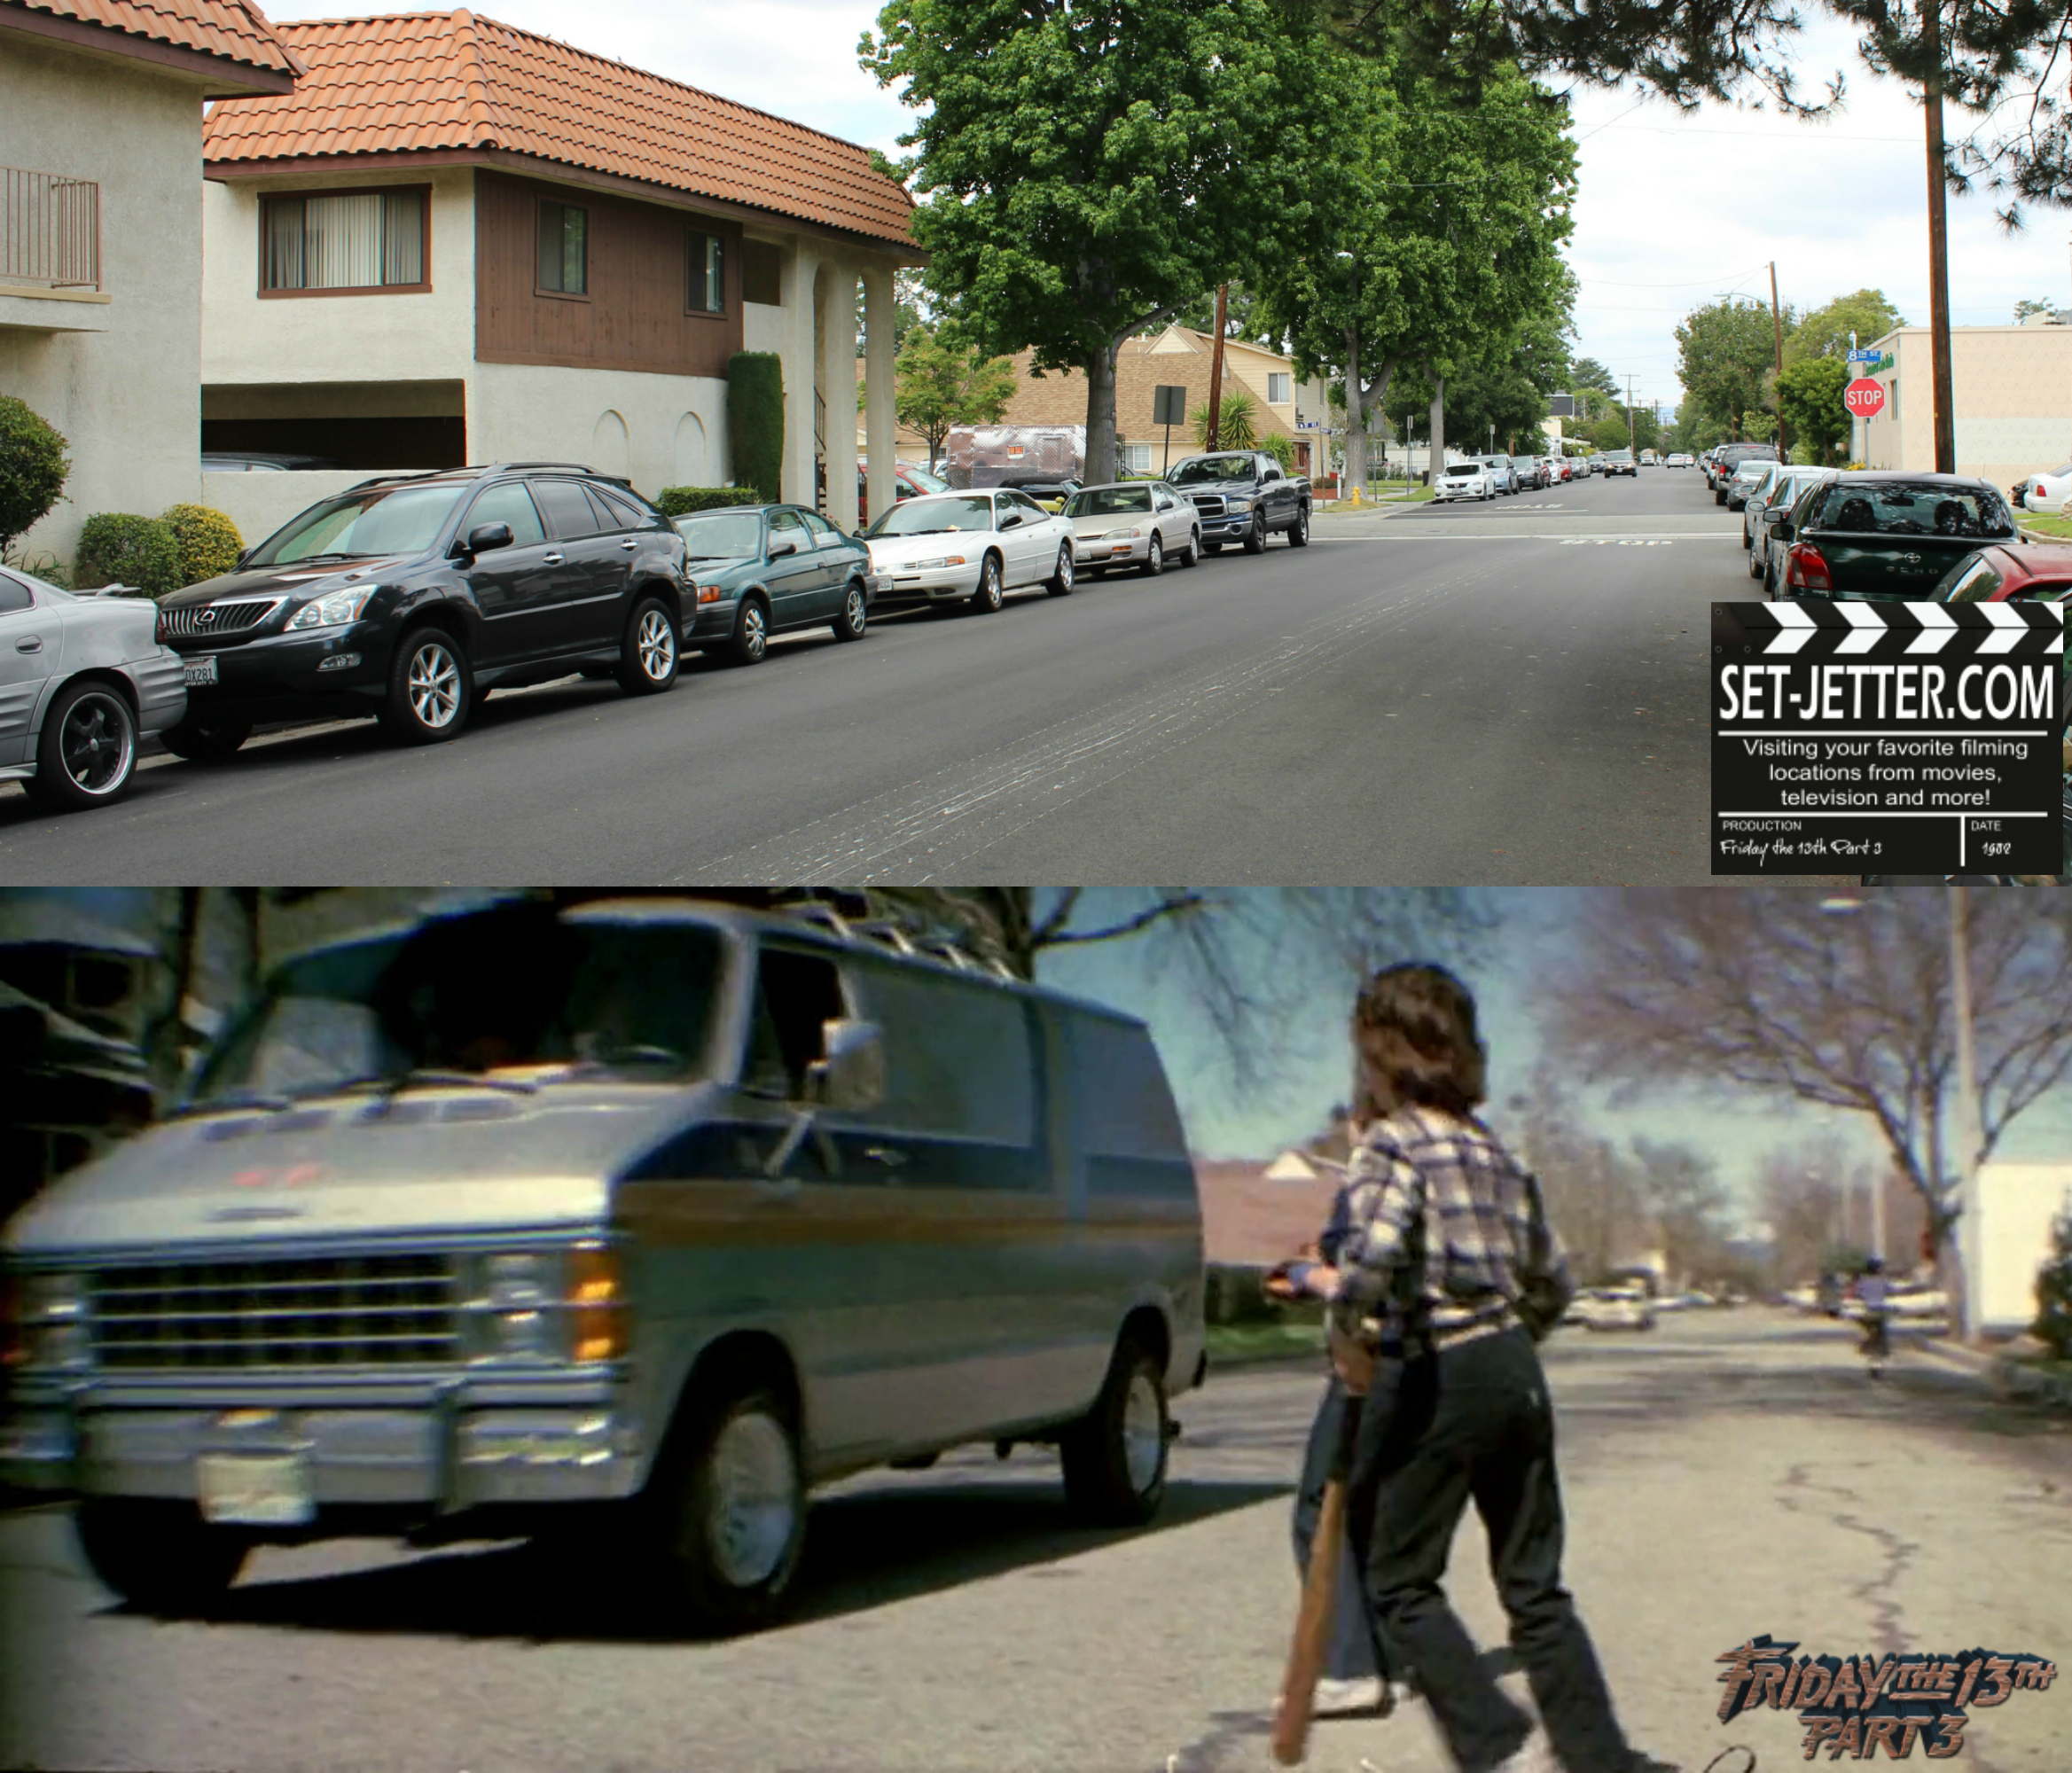 Friday the 13th Part 3 comparison 06.jpg